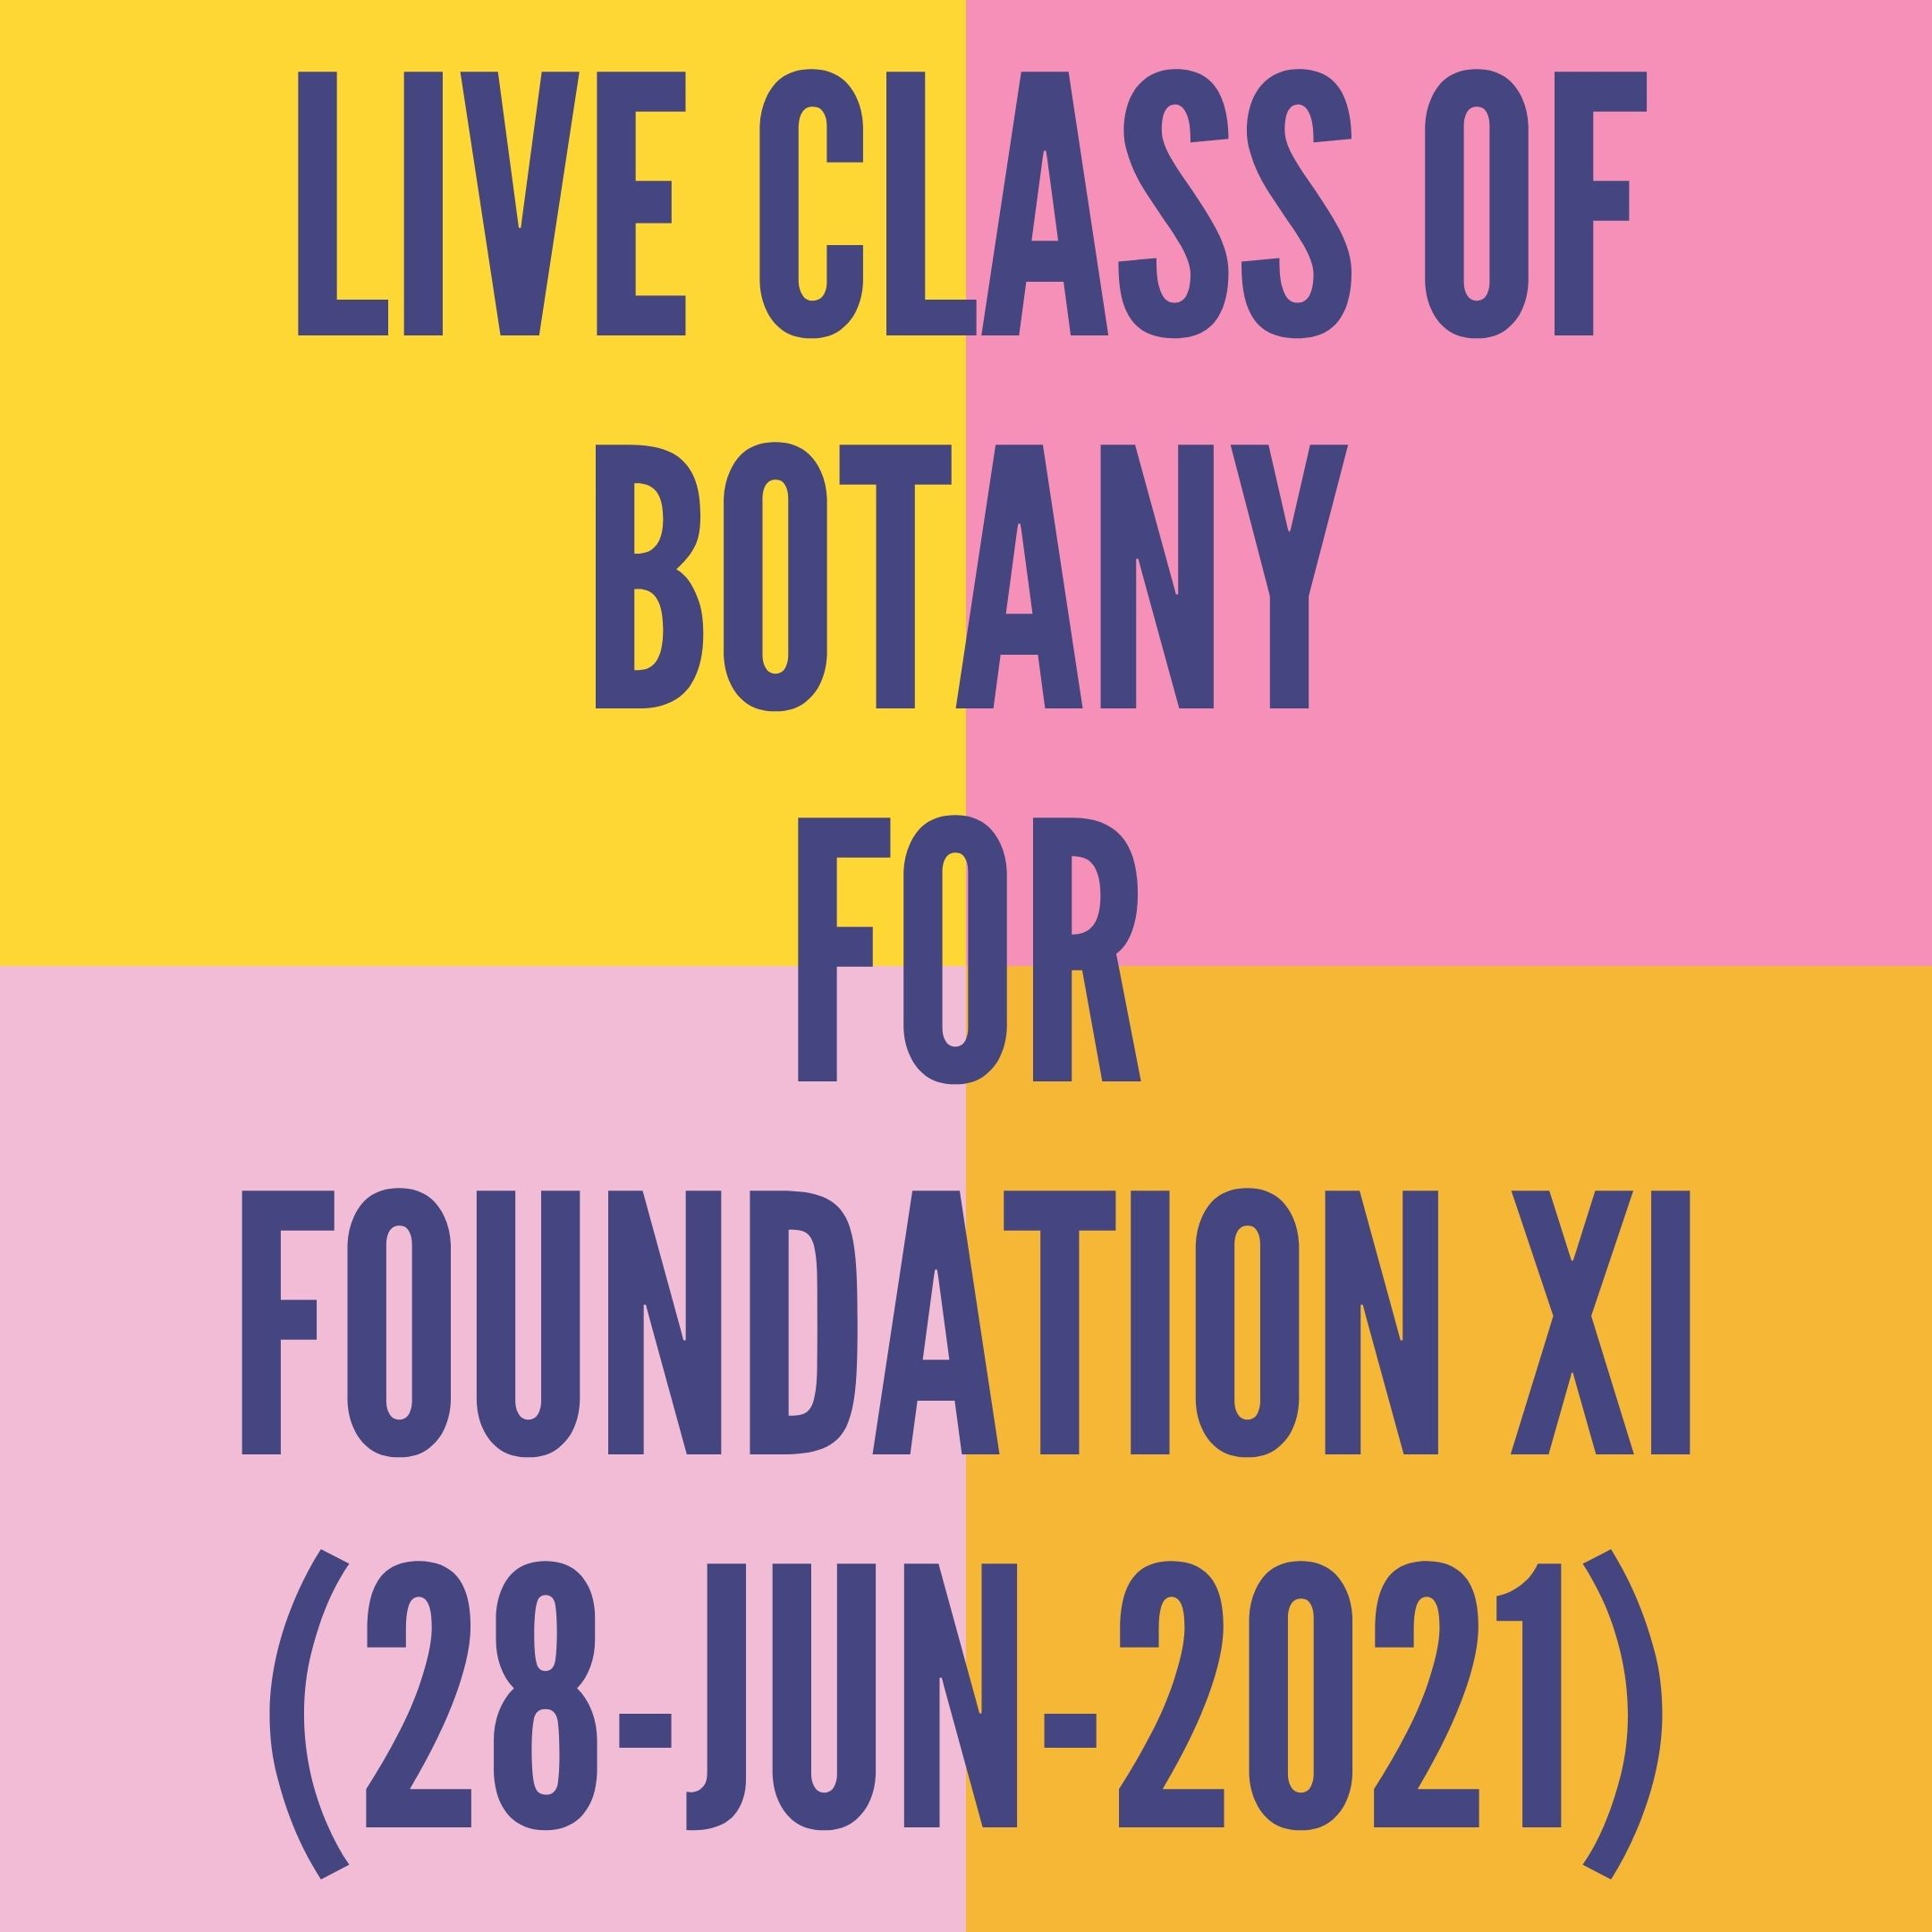 LIVE CLASS OF BOTANY FOR FOUNDATION XI (28-JUN-2021) CELL-THE UNIT OF LIFE